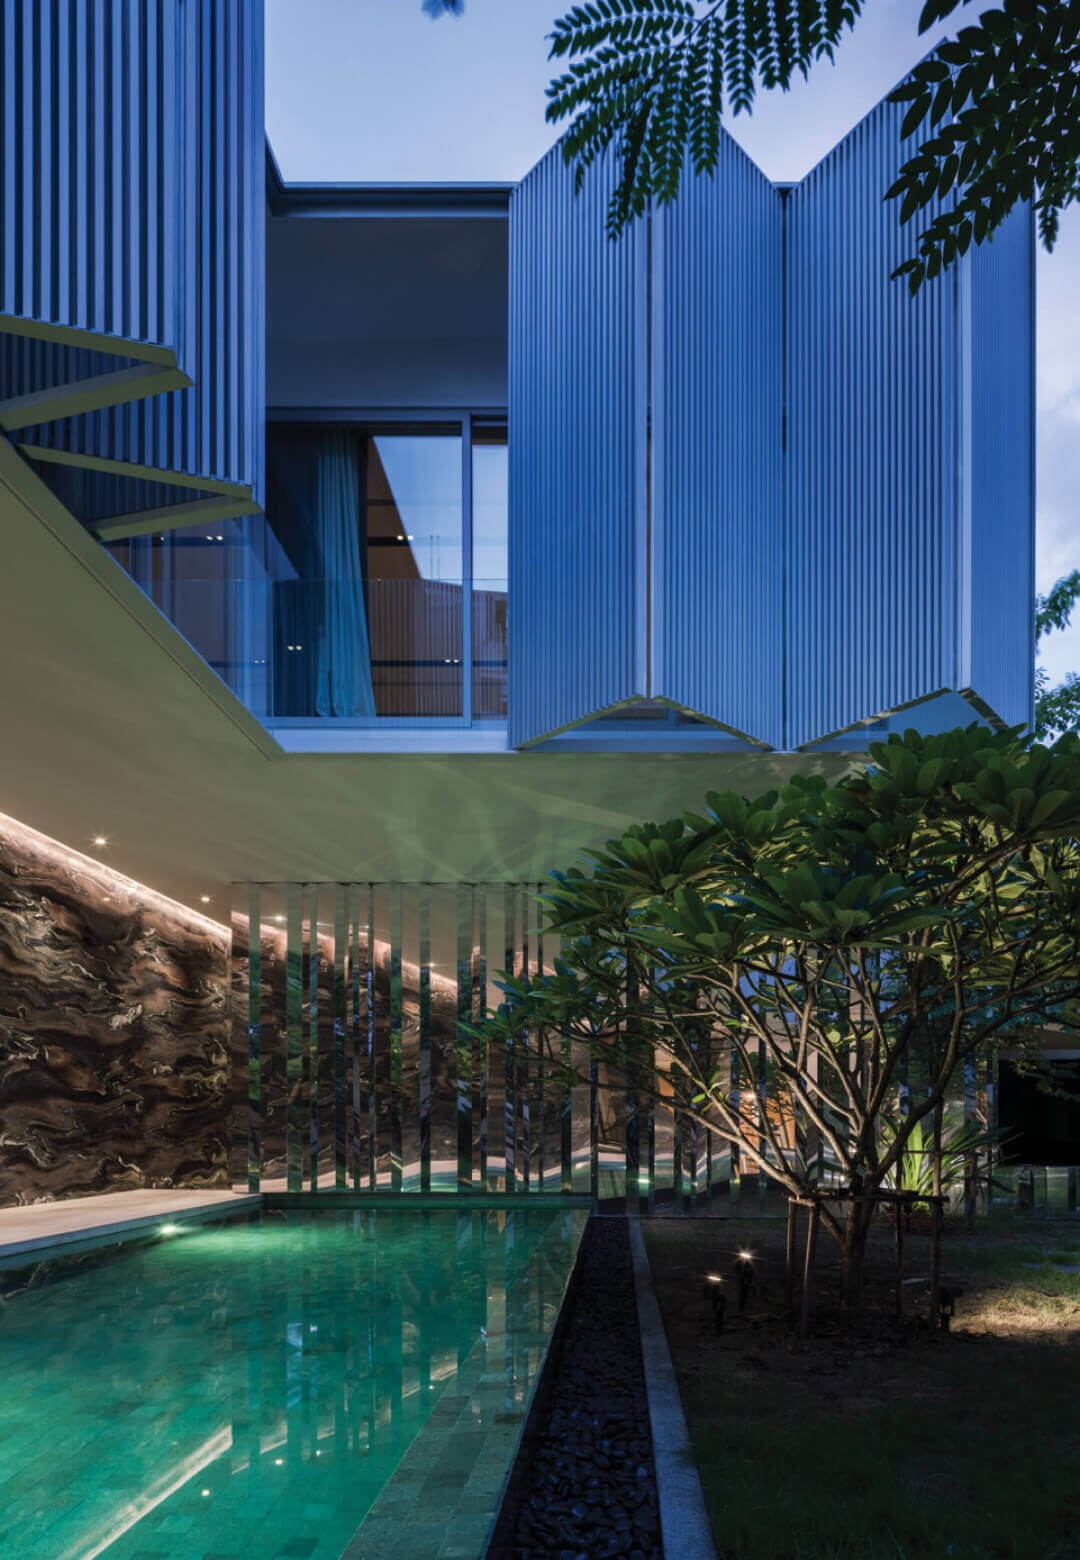 Ayutt and Associates design has designed Interlude House as a welcome break away from the every-bustling city of Bangkok   Interlude  House by Ayutt and Associates design   STIRworld